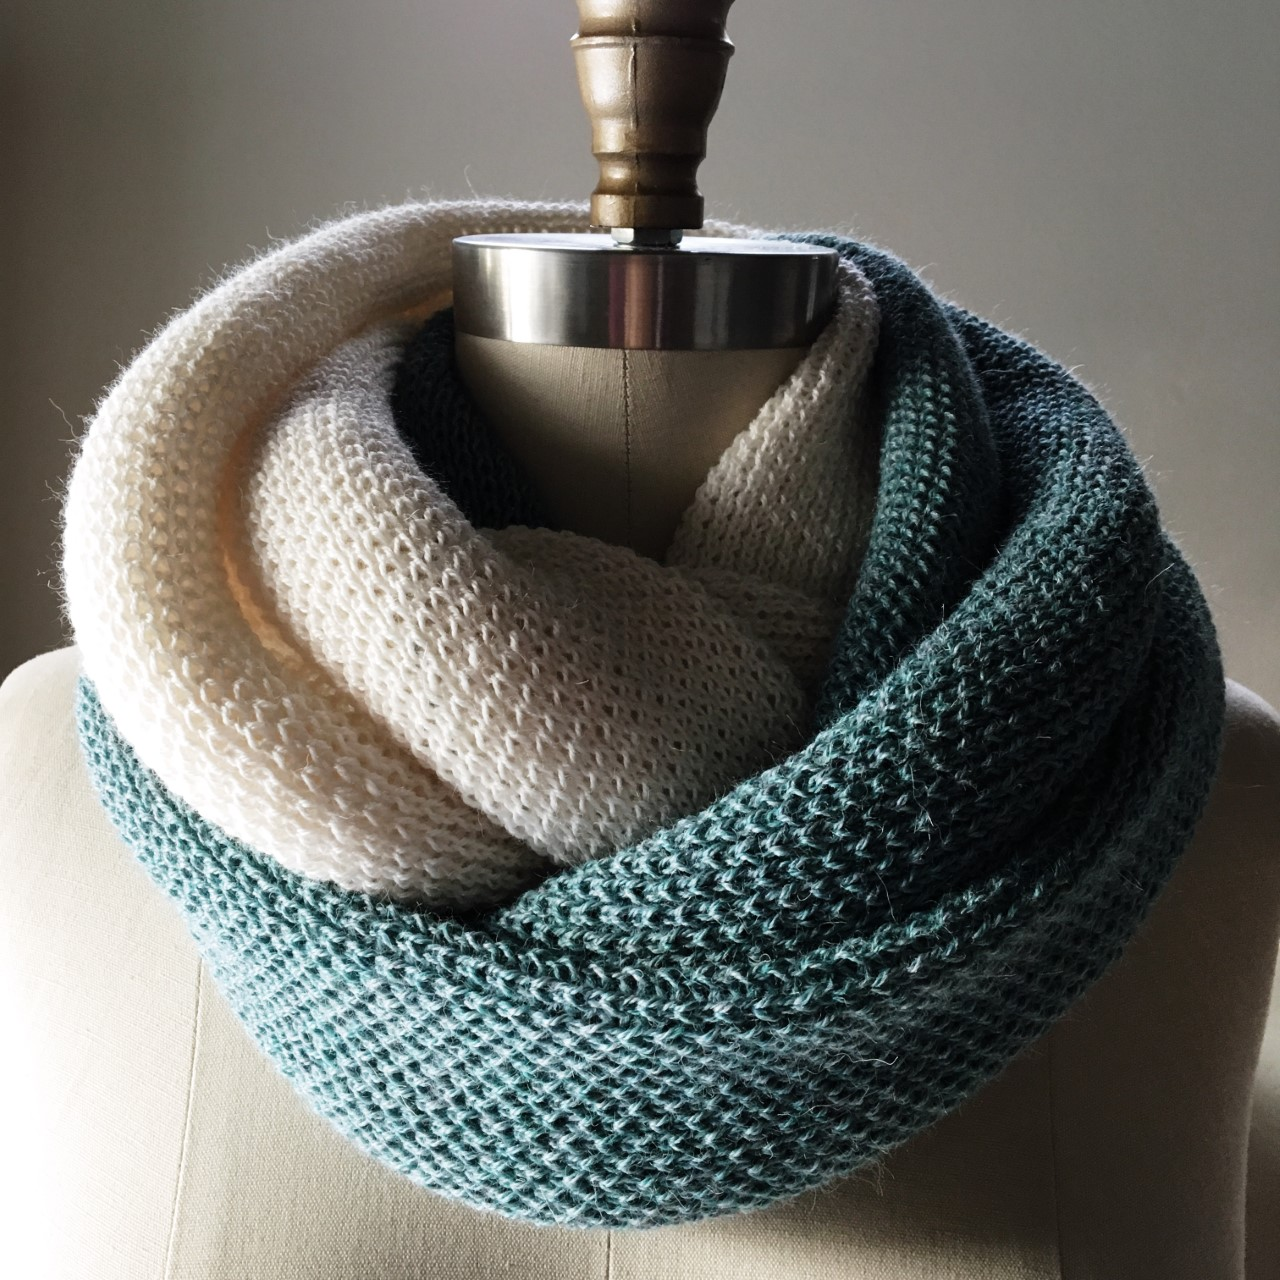 Baby Llama LUX cowl - Snow White - Caribbean Breeze